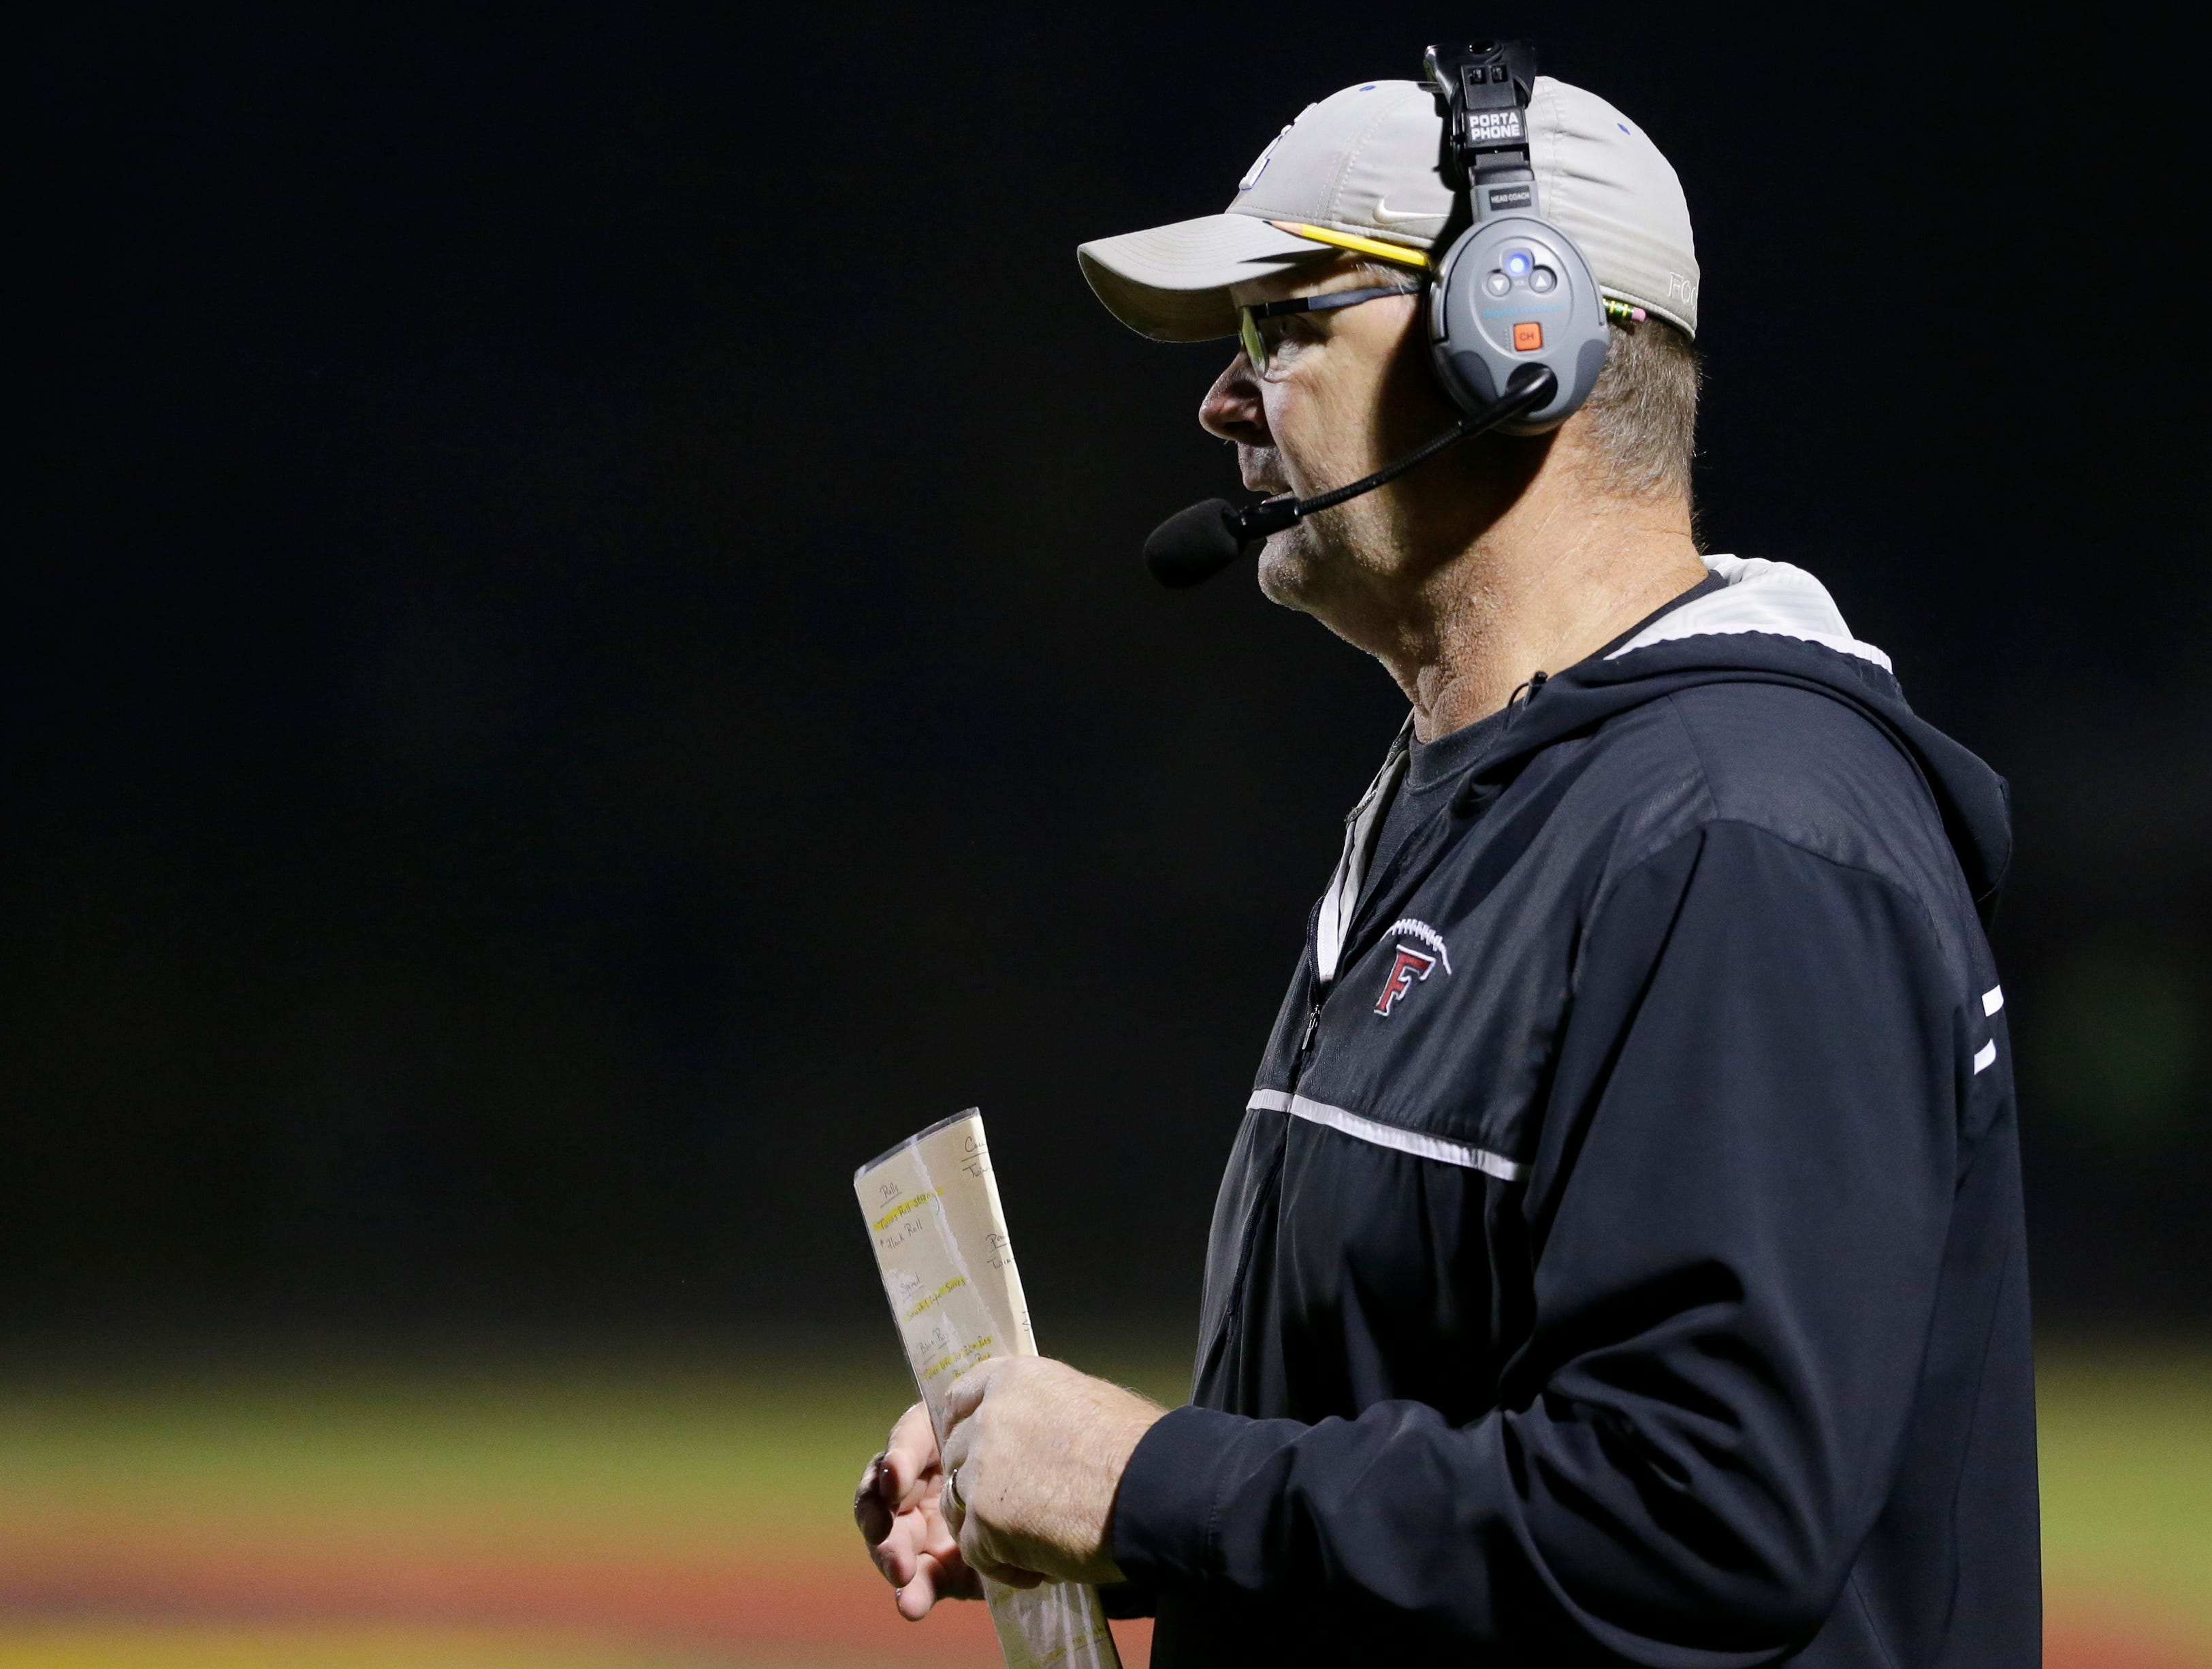 Fond du Lac's head coach Steve Jorgensen keeps an eye on his team during the game.  Fond du Lac Cardinals played Arrowhead Warhawks in WIAA football playoff sectionals, Friday, Oct. 26, 2018, at Fruth Field in Fond du Lac.  Fond du Lac won 28 - 22.Joe Sienkiewicz/USA Today NETWORK-Wisconsin